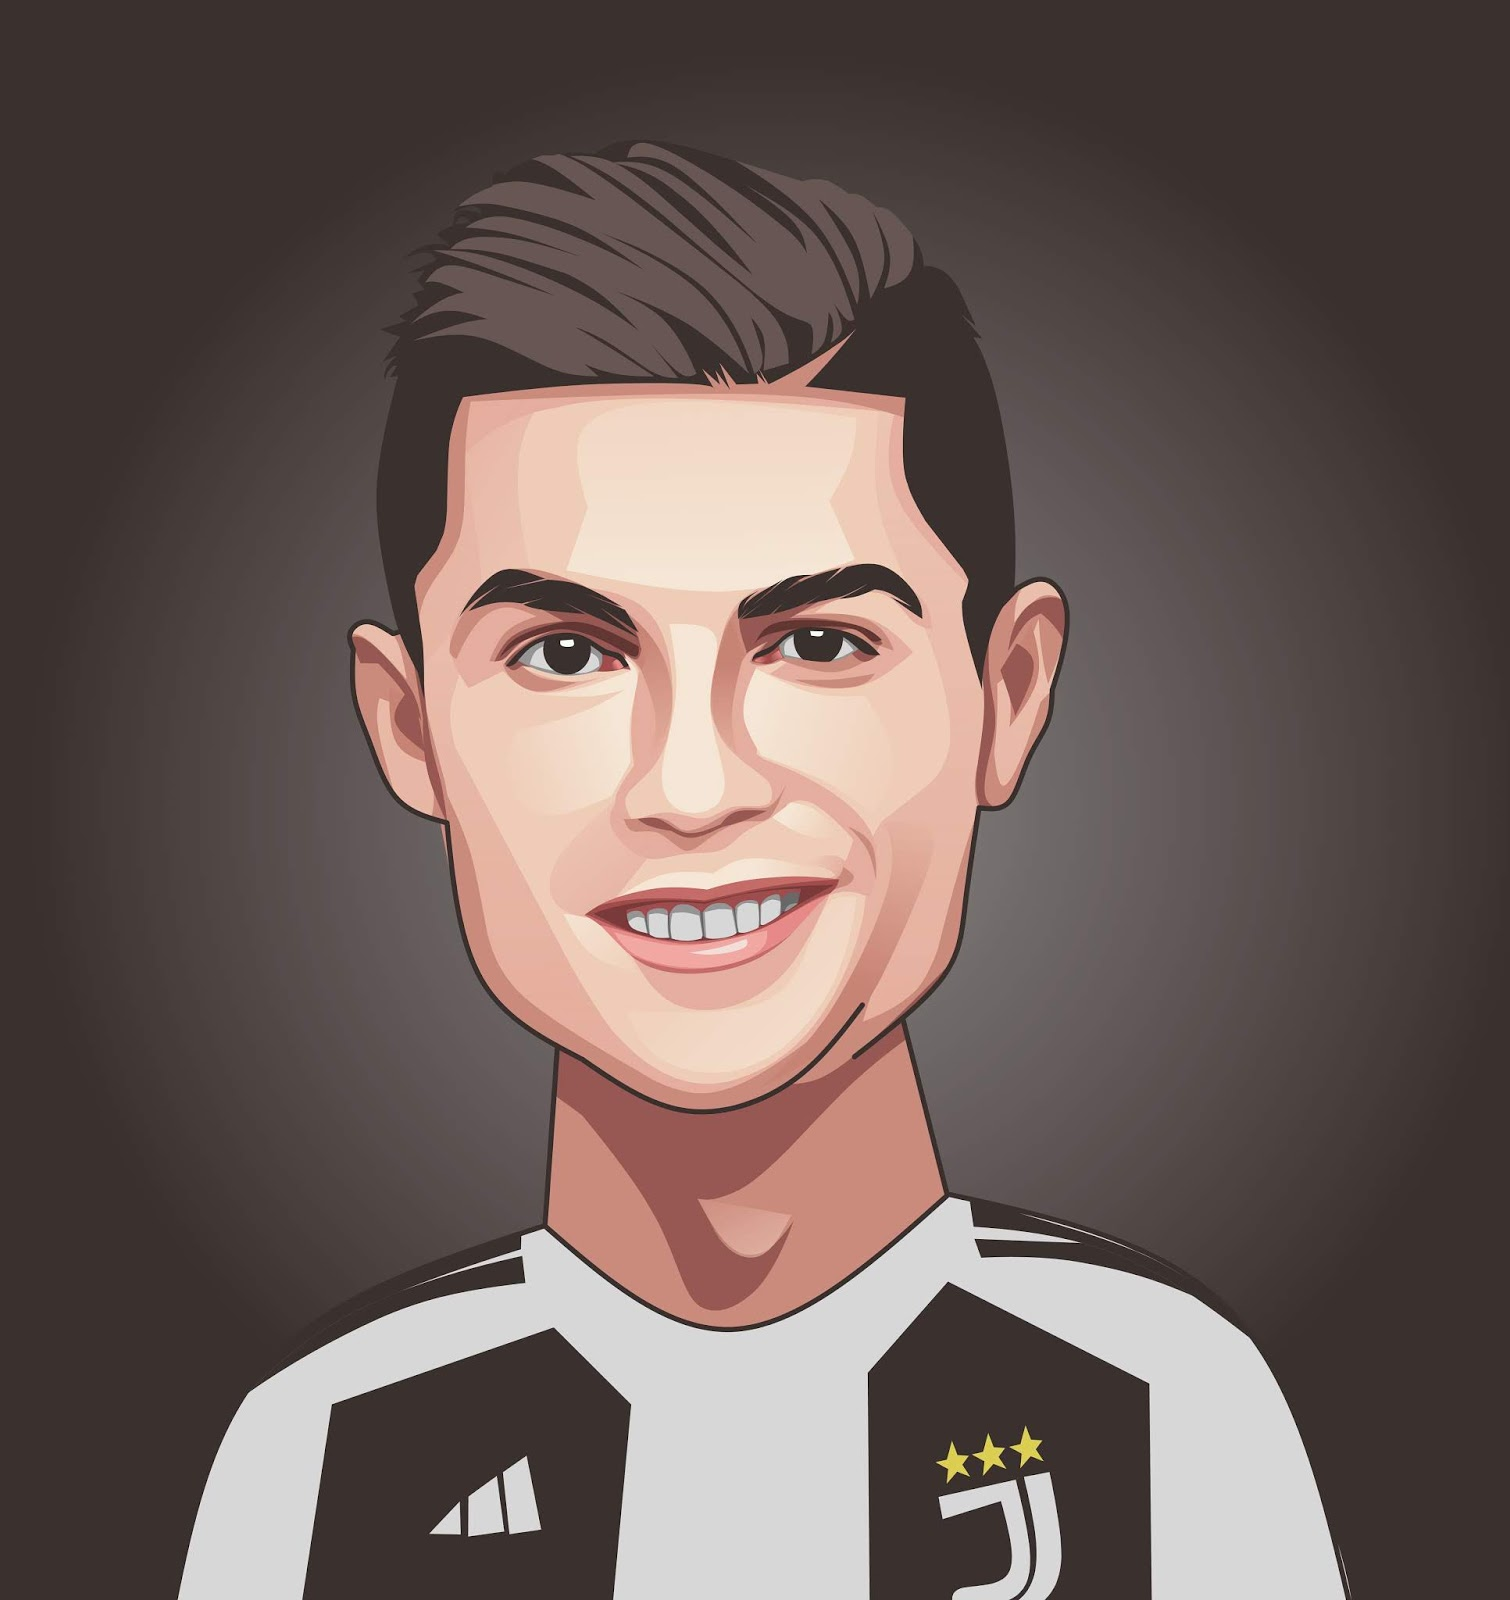 Tutorial Vector Masking Wajah Ronaldo Di Infinite Design Dengan Mudah Cara Vector Tutorial Vector Dan Design